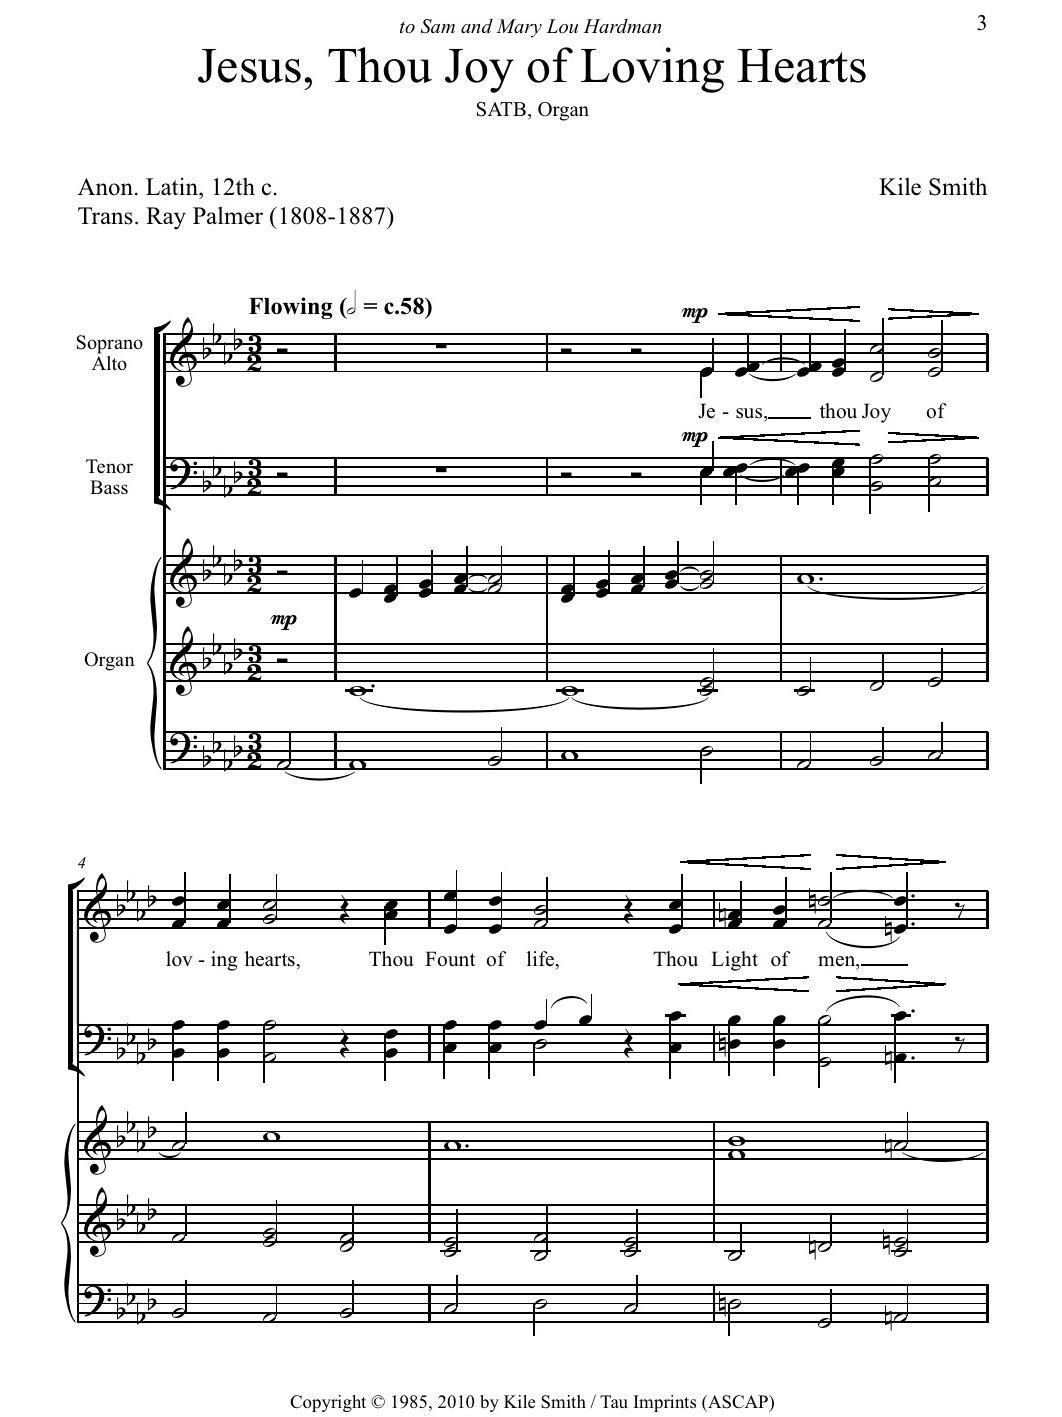 he will hold me fast sheet music pdf